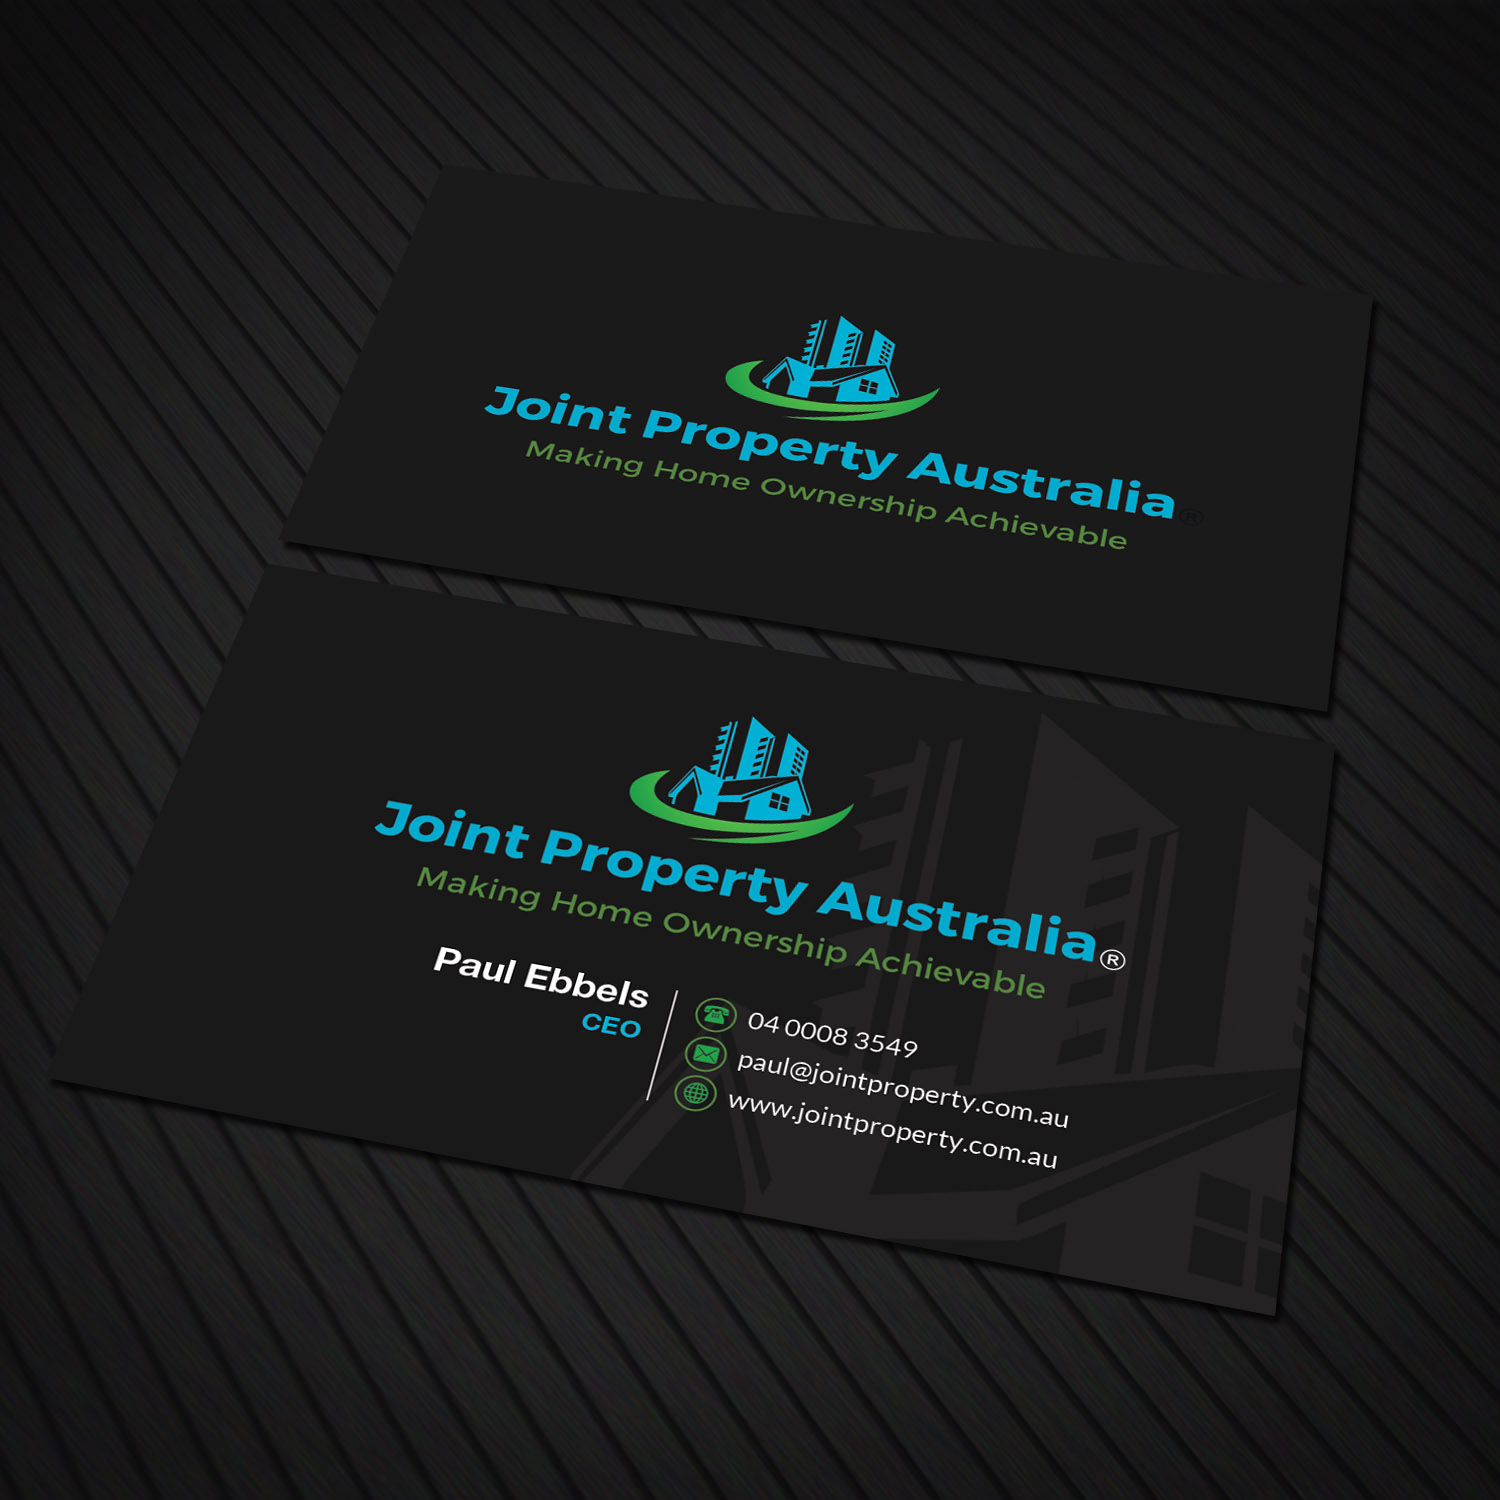 Professional bold real estate business card design for joint business card design by sandaruwan for joint property australia design 15167854 colourmoves